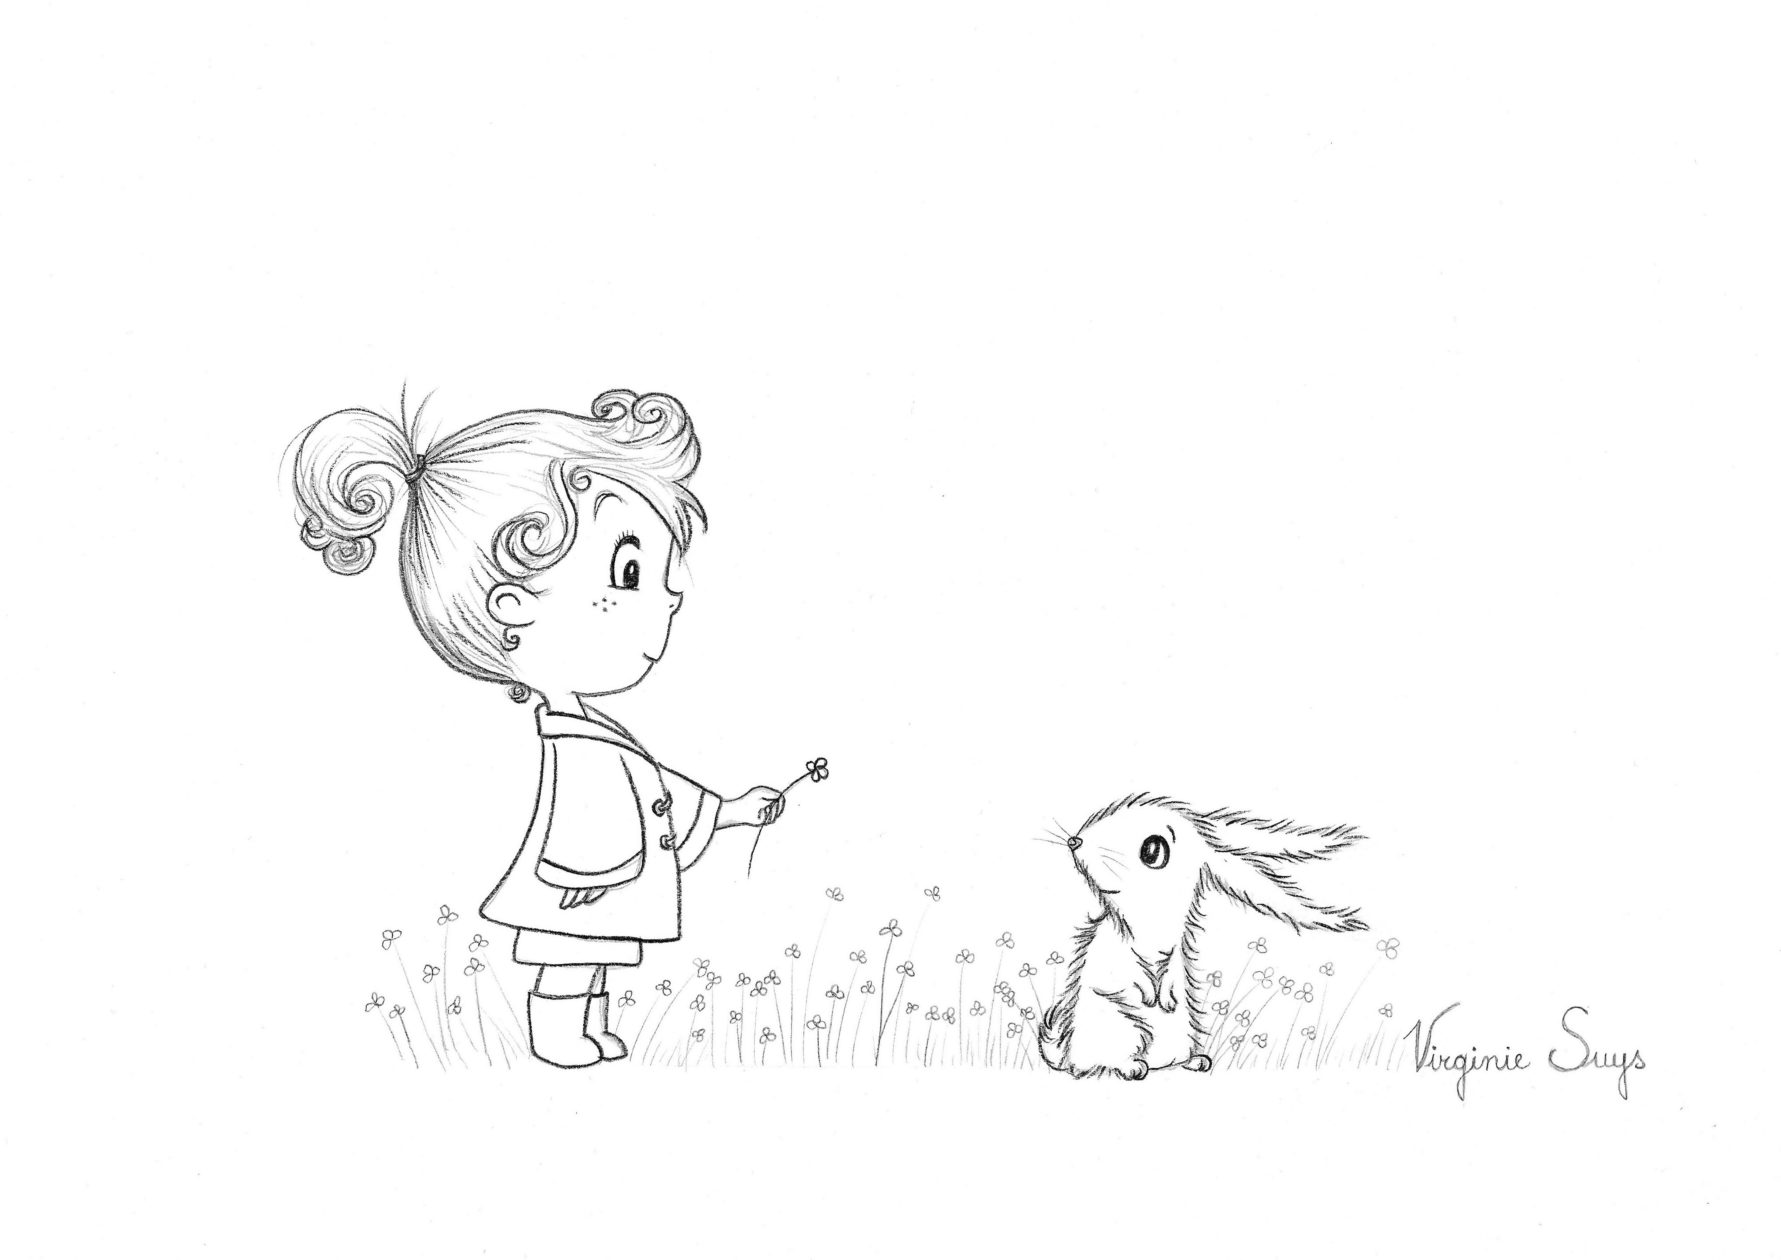 Virginie Suys Girl with rabbit in black & white illustration